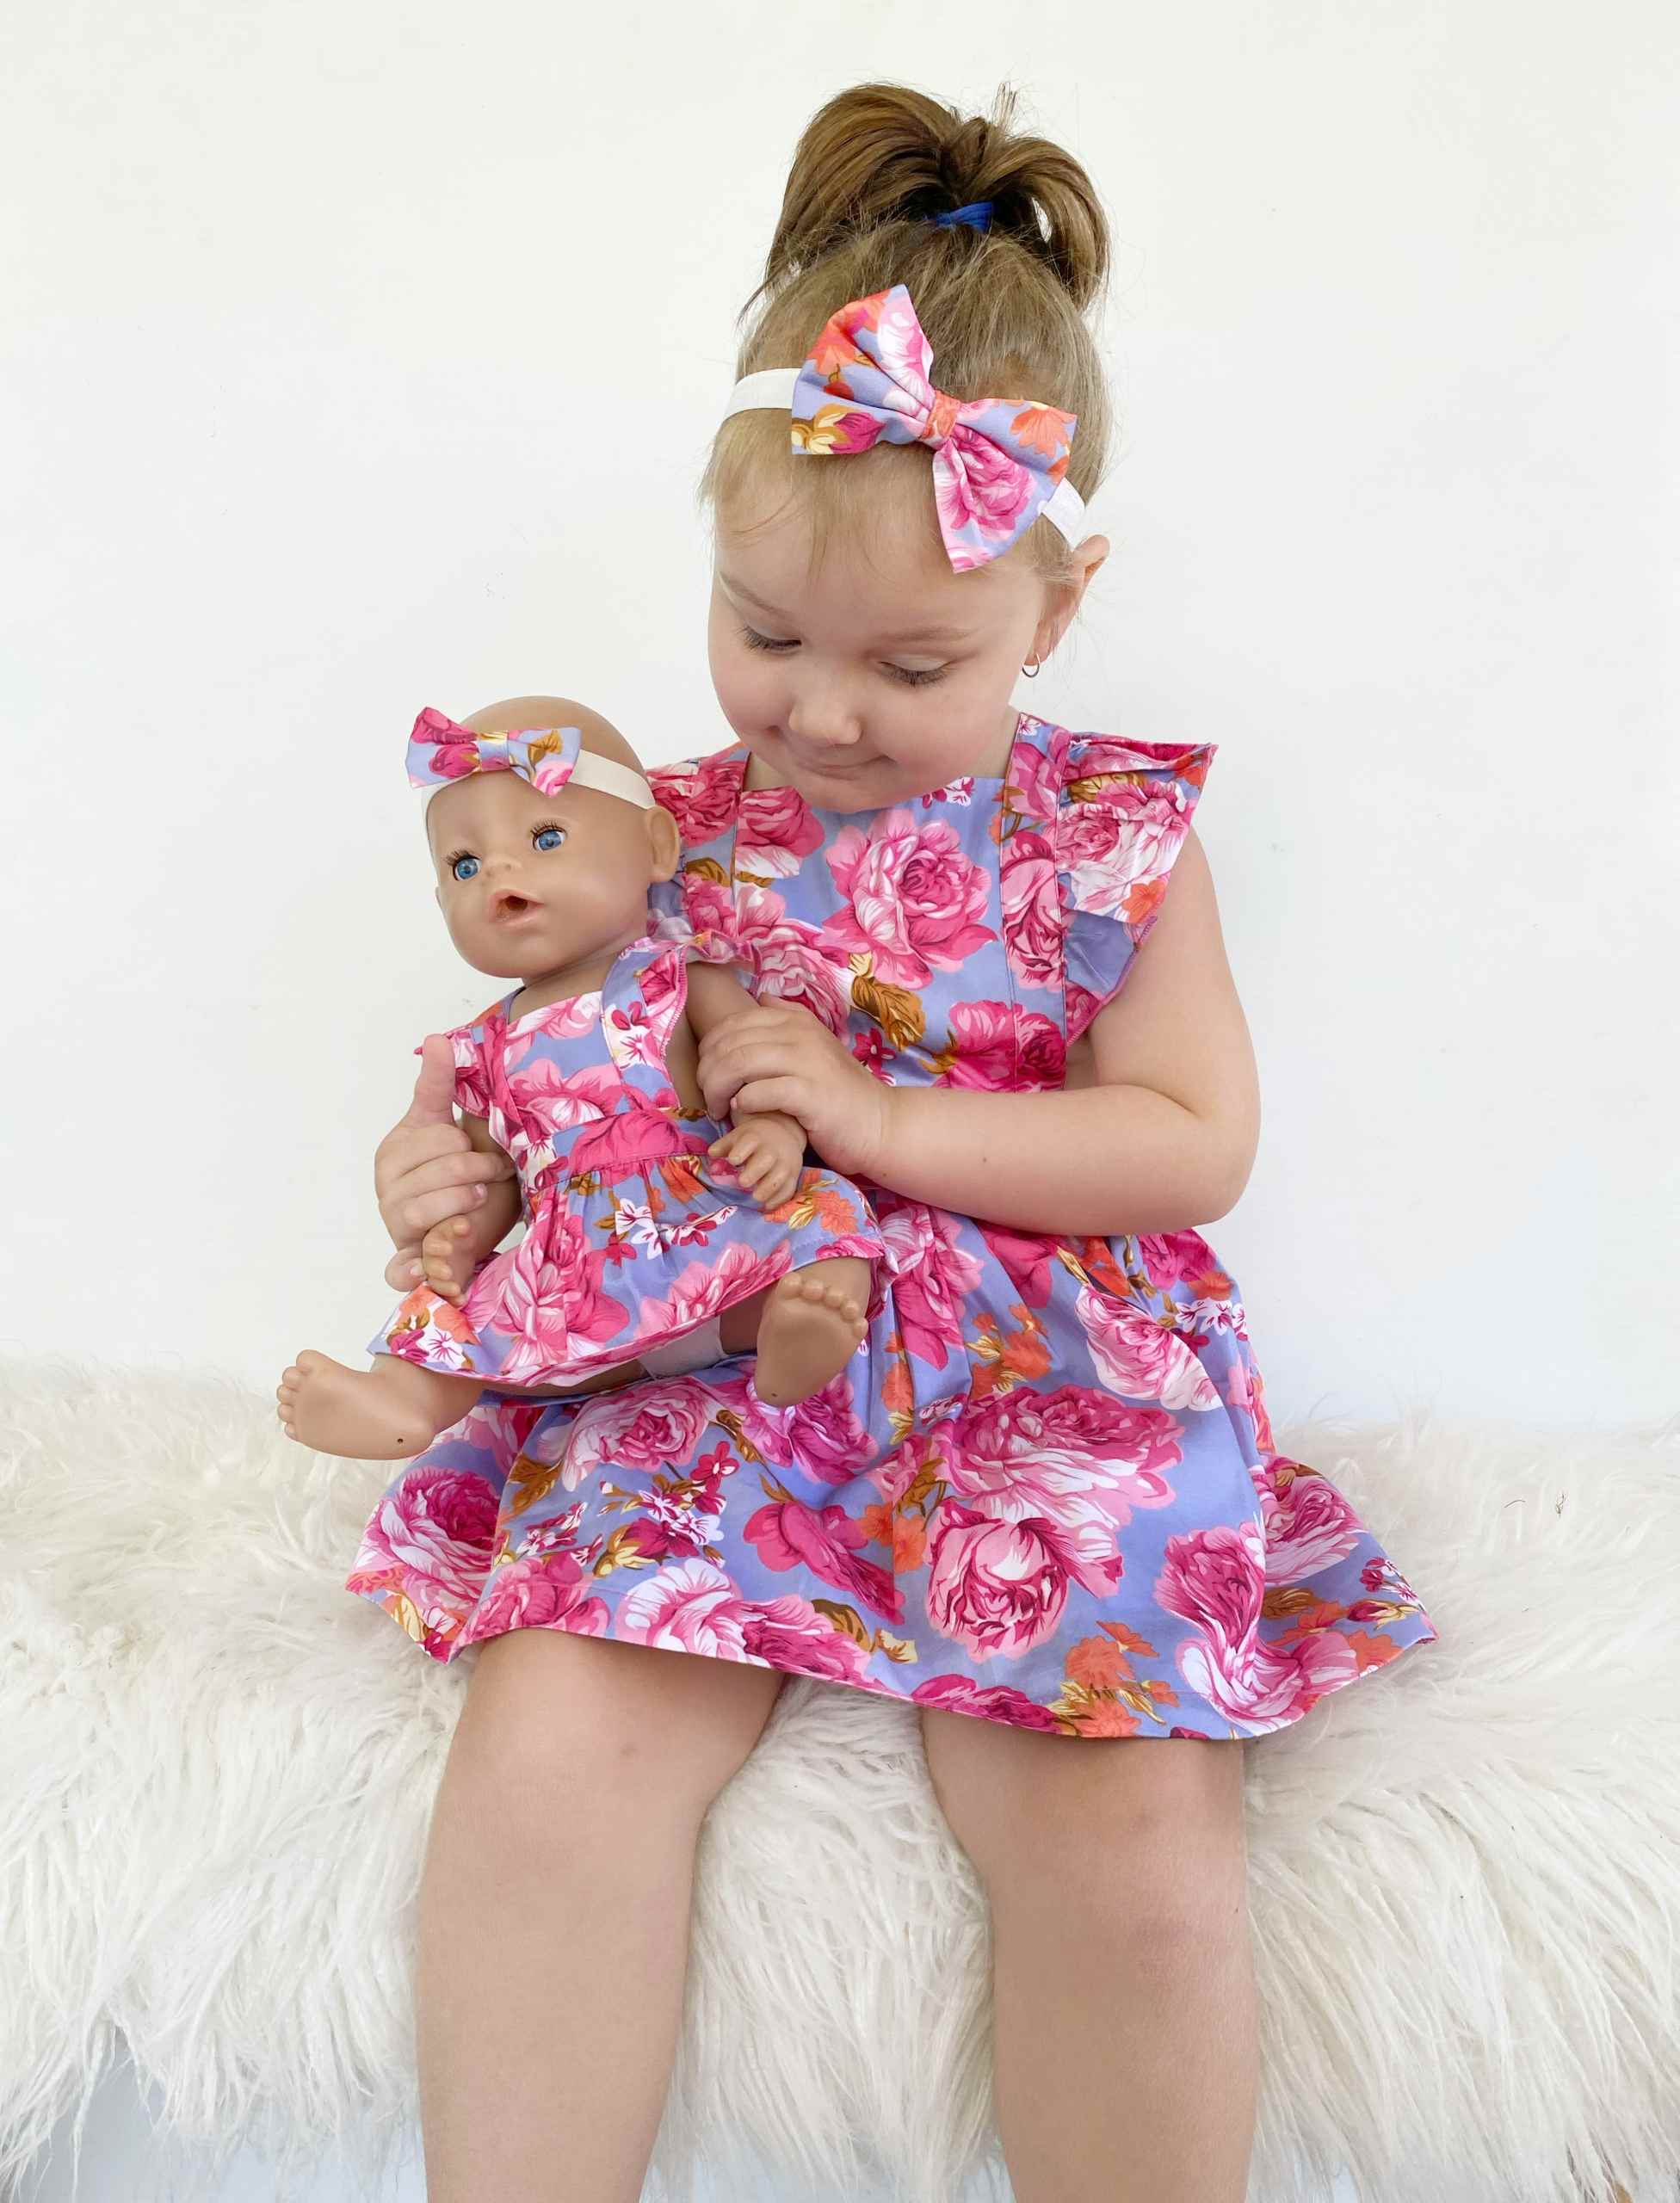 A girl and her dolly matching in floral pinafore